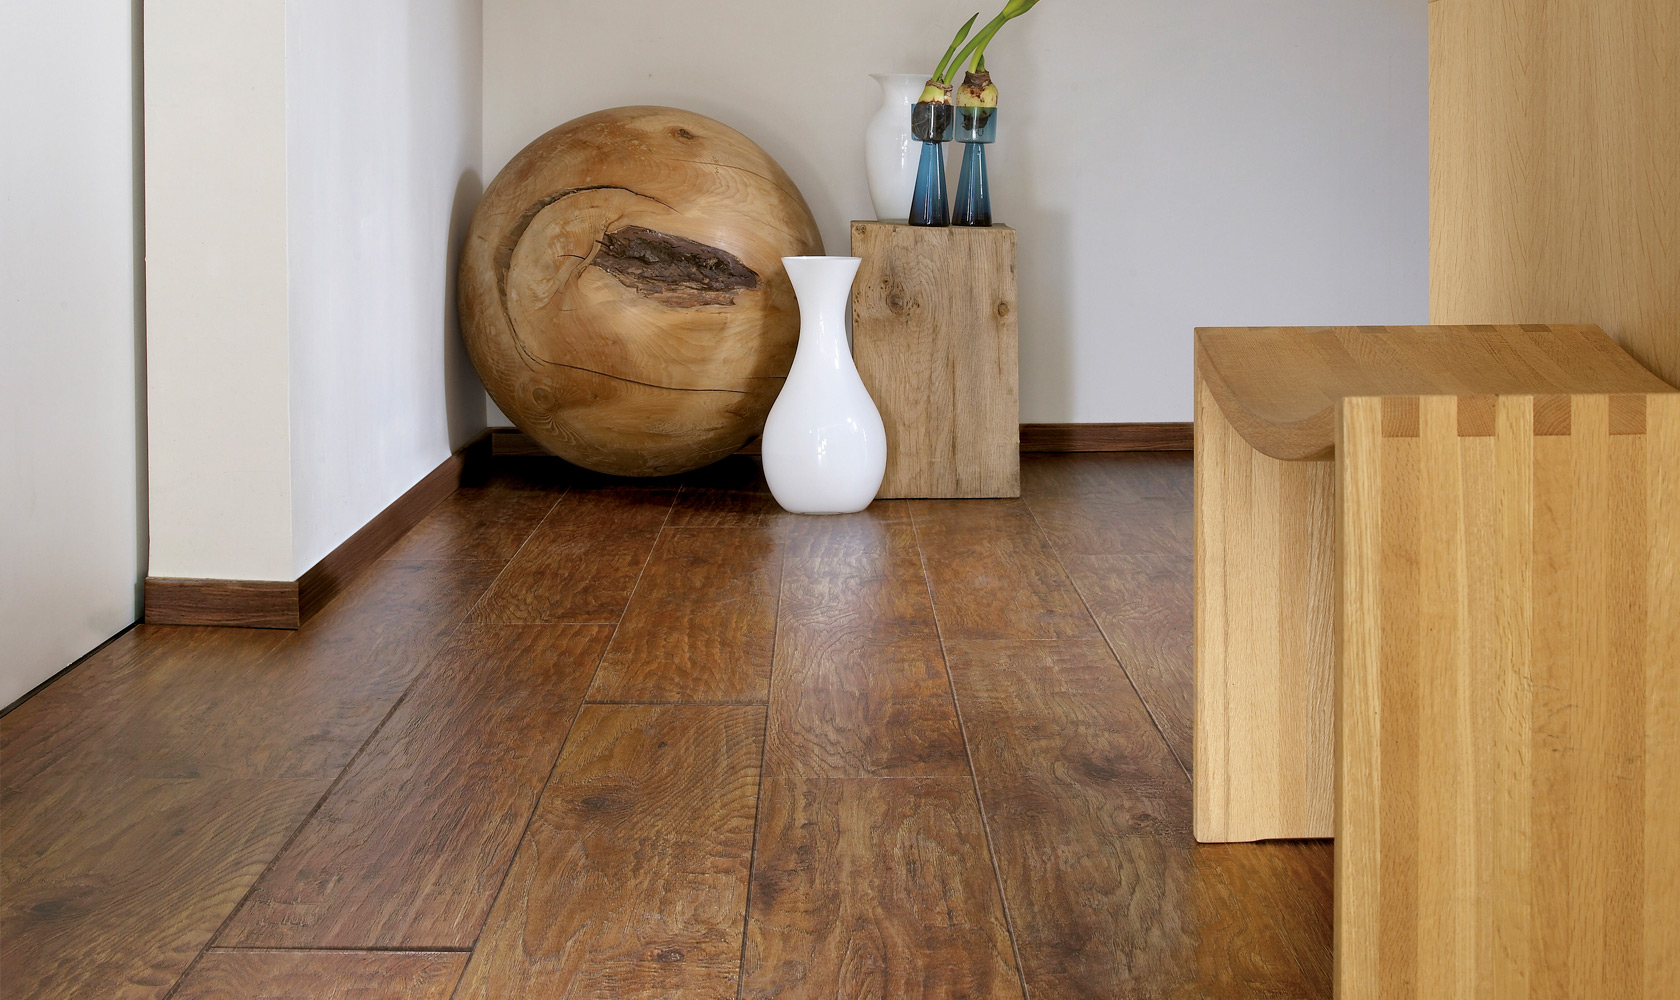 laminat floorwood osobennosti i preimushchestva 7 - Laminate: features and benefits